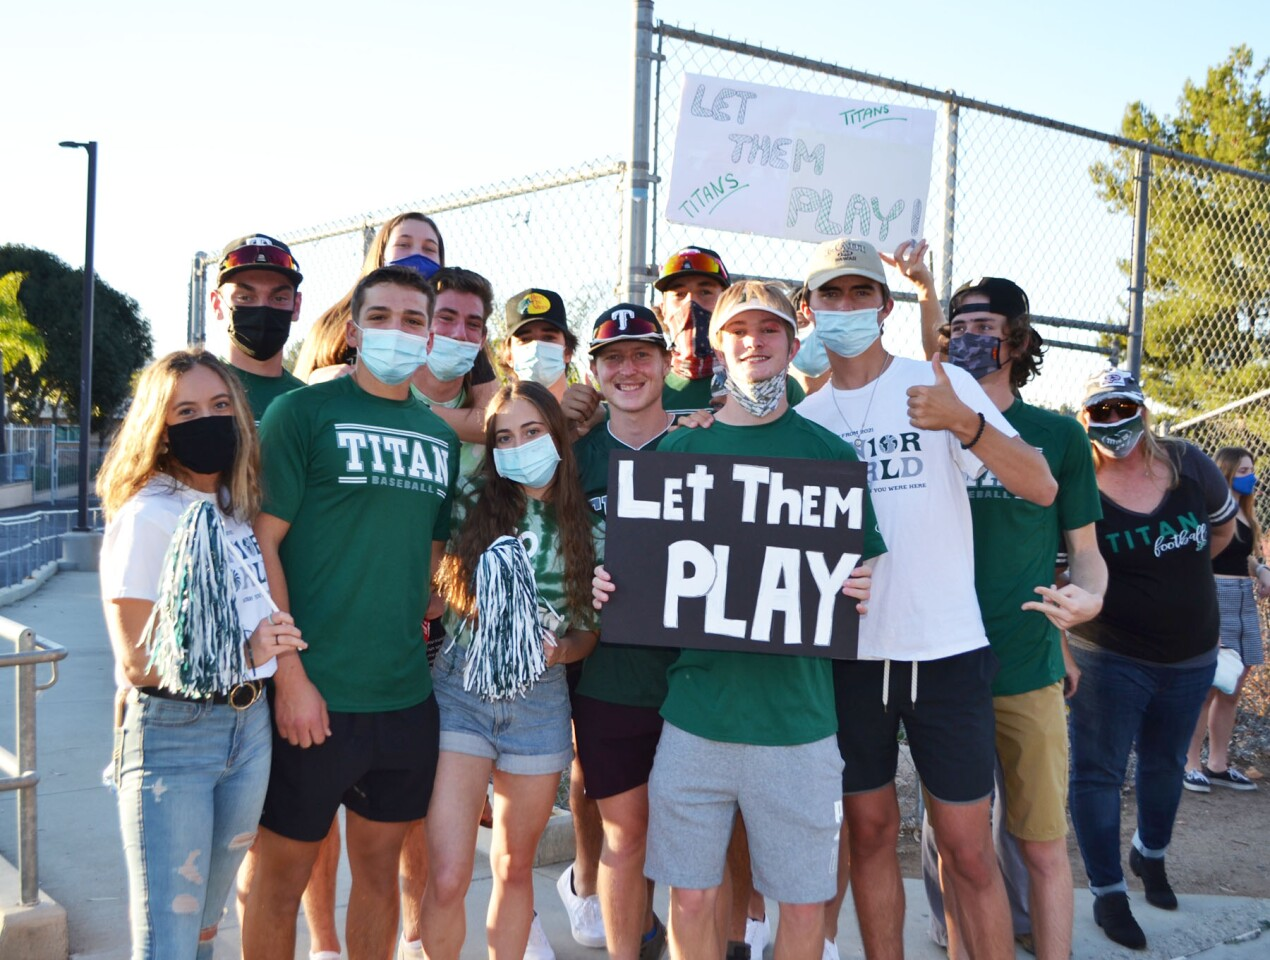 Members of Poway High's baseball teams and friends joined the rally.